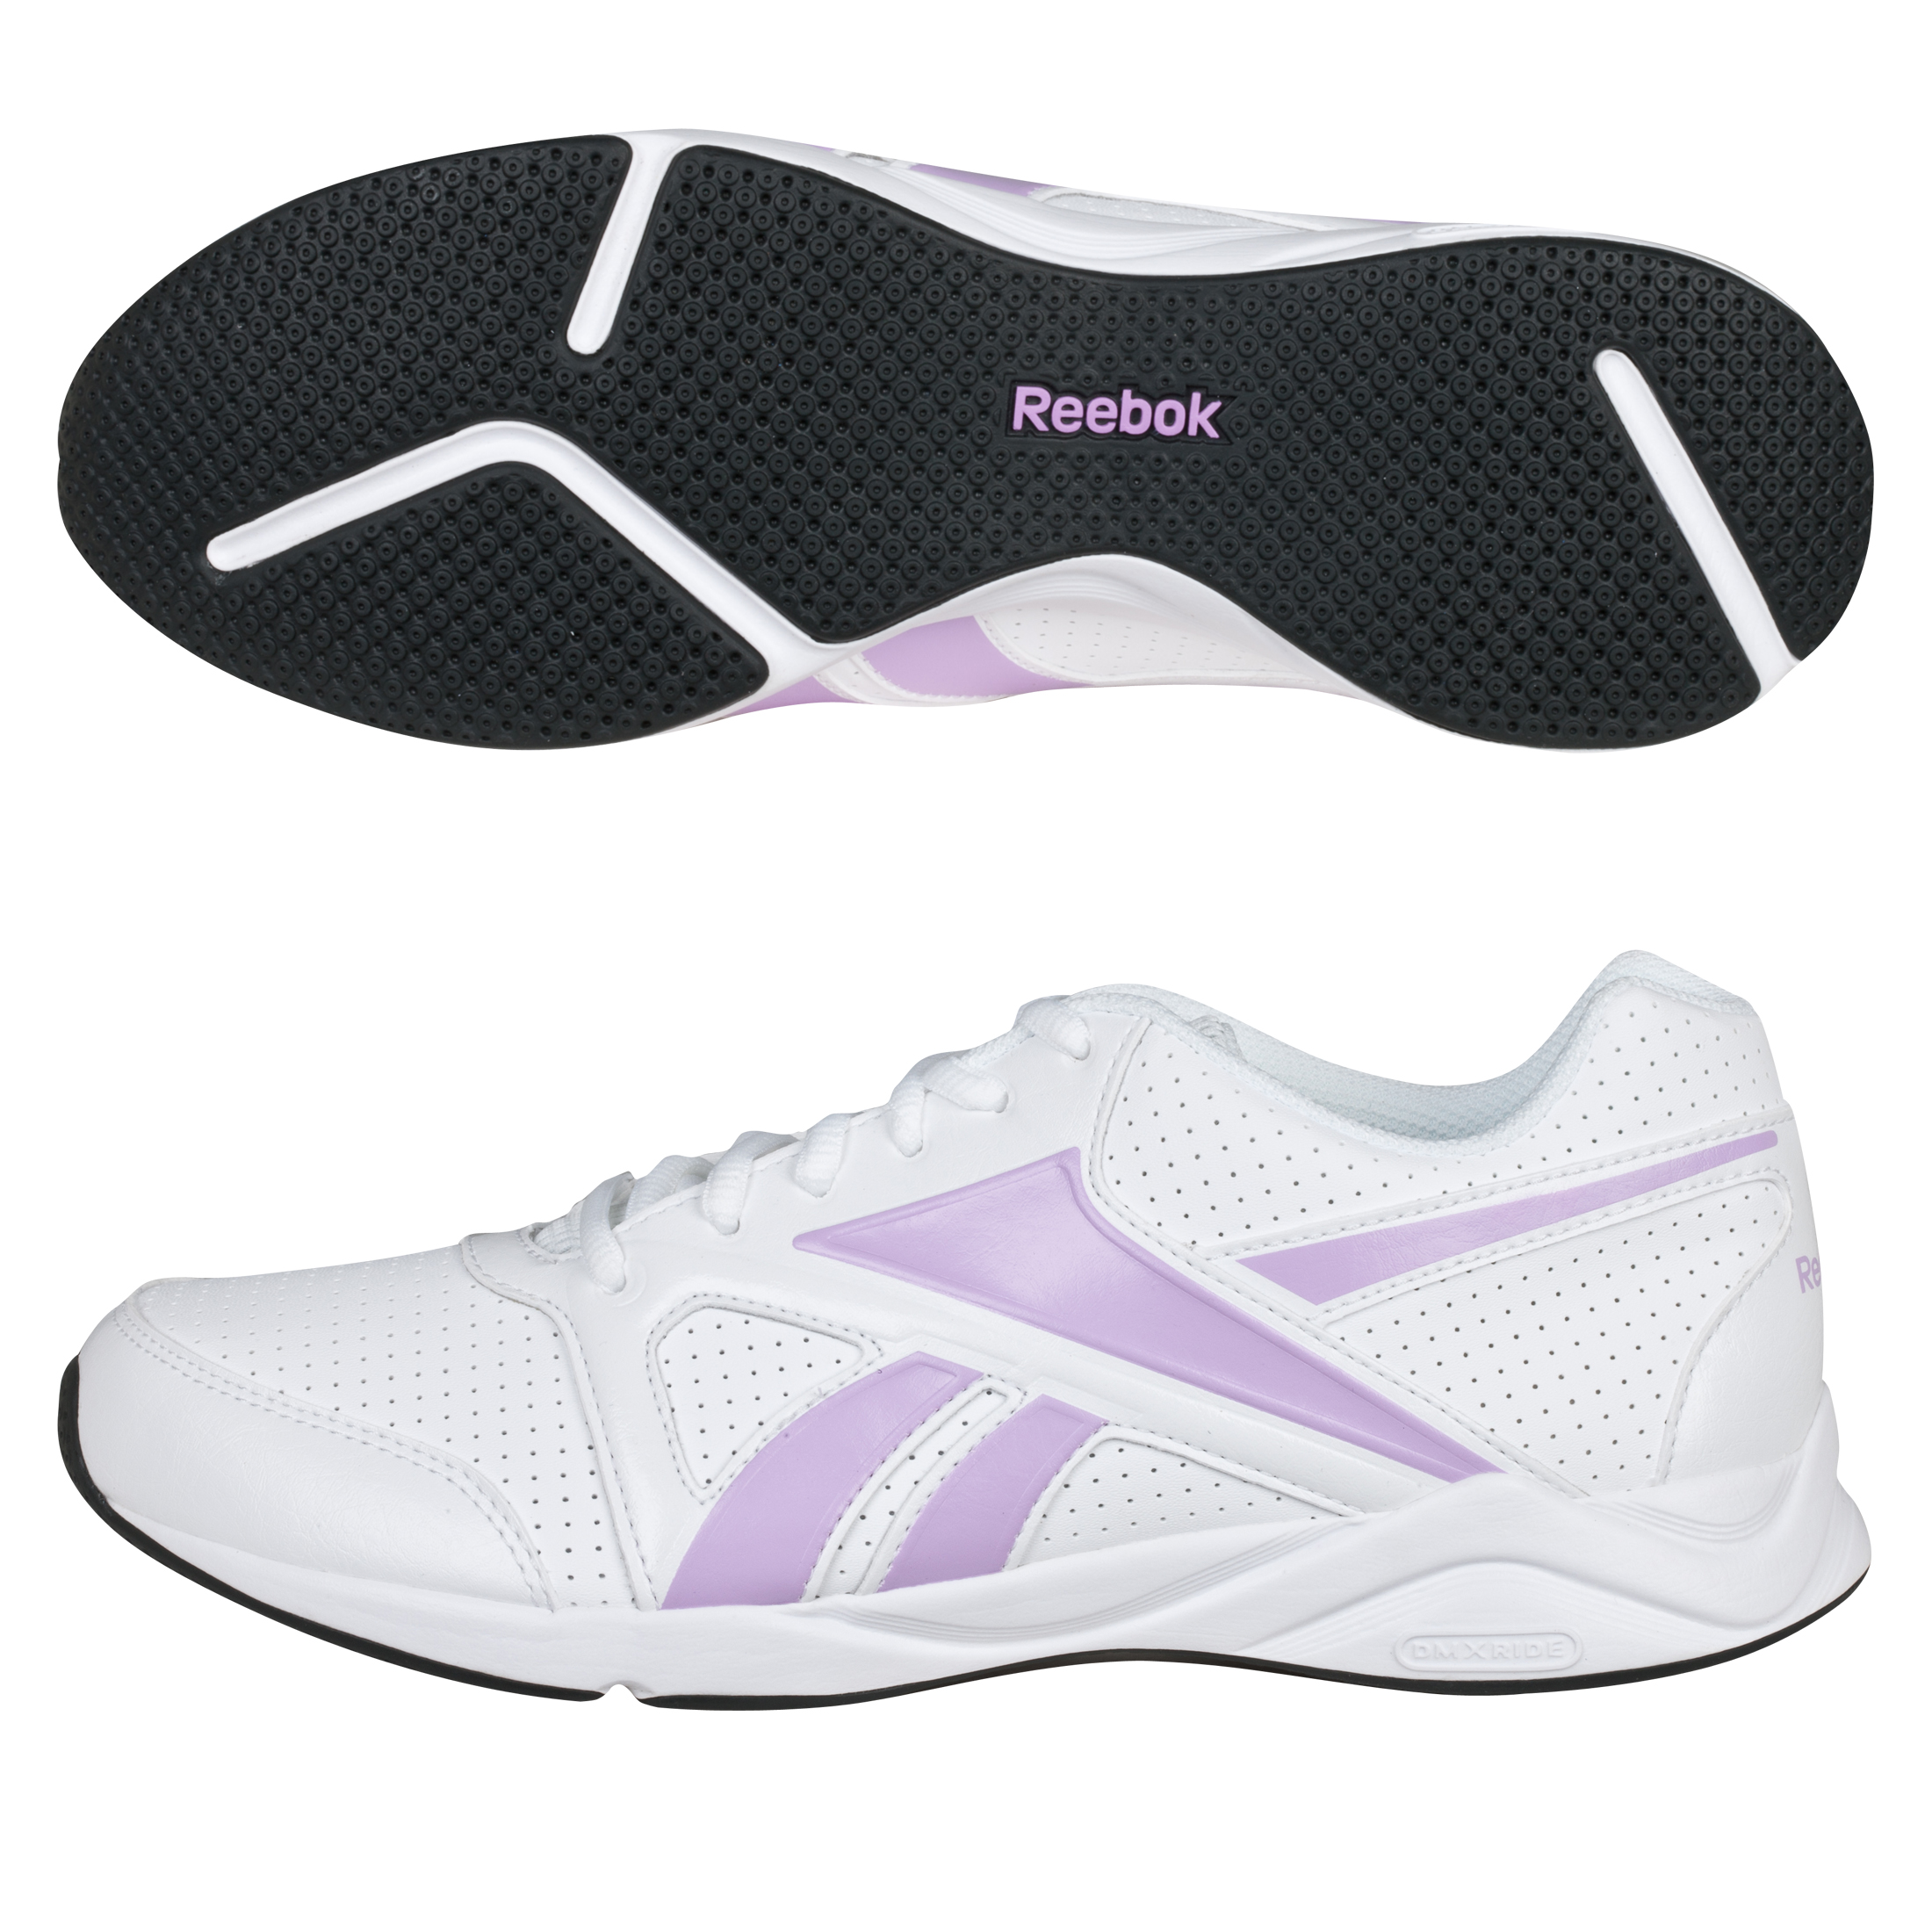 Reebok Reesculpt Trainer Ii - White/Purple - Women